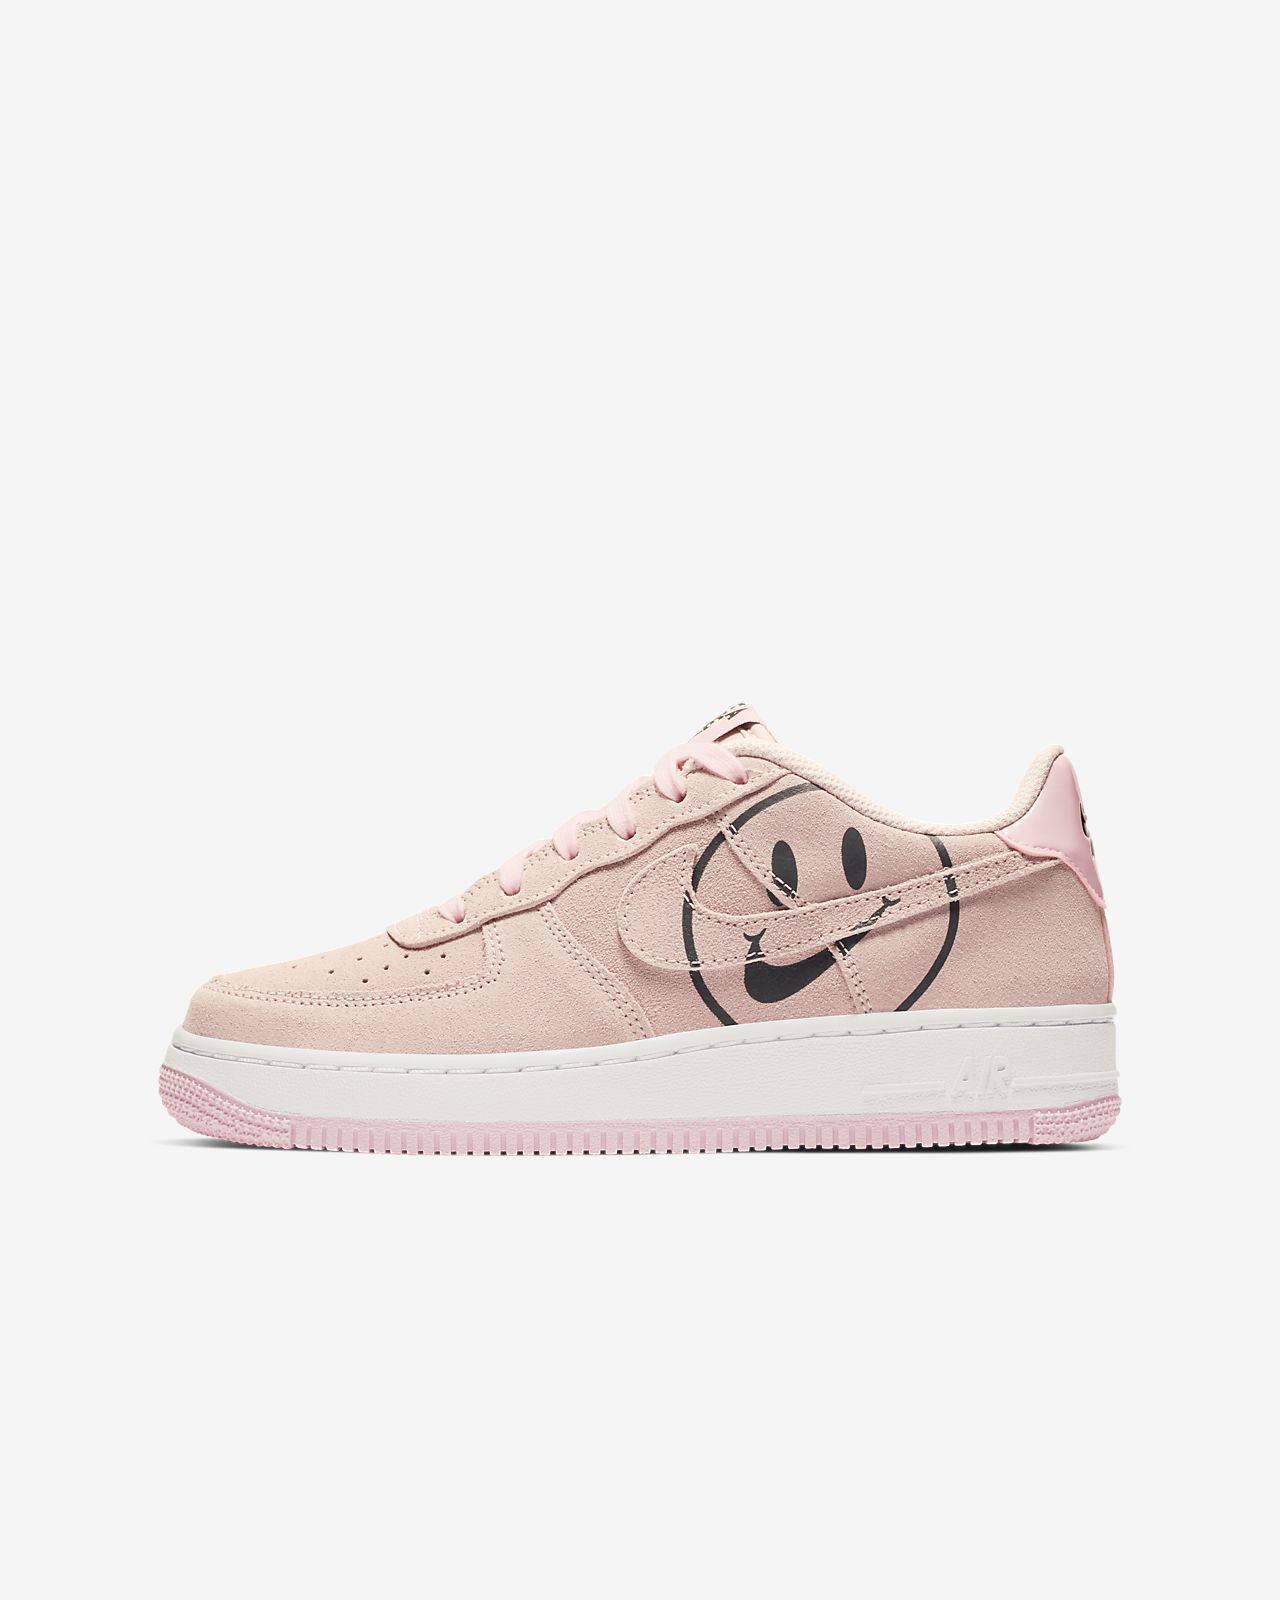 low priced 3a61d 21c03 ... Nike Air Force 1 LV8 2 Big Kids  Shoe